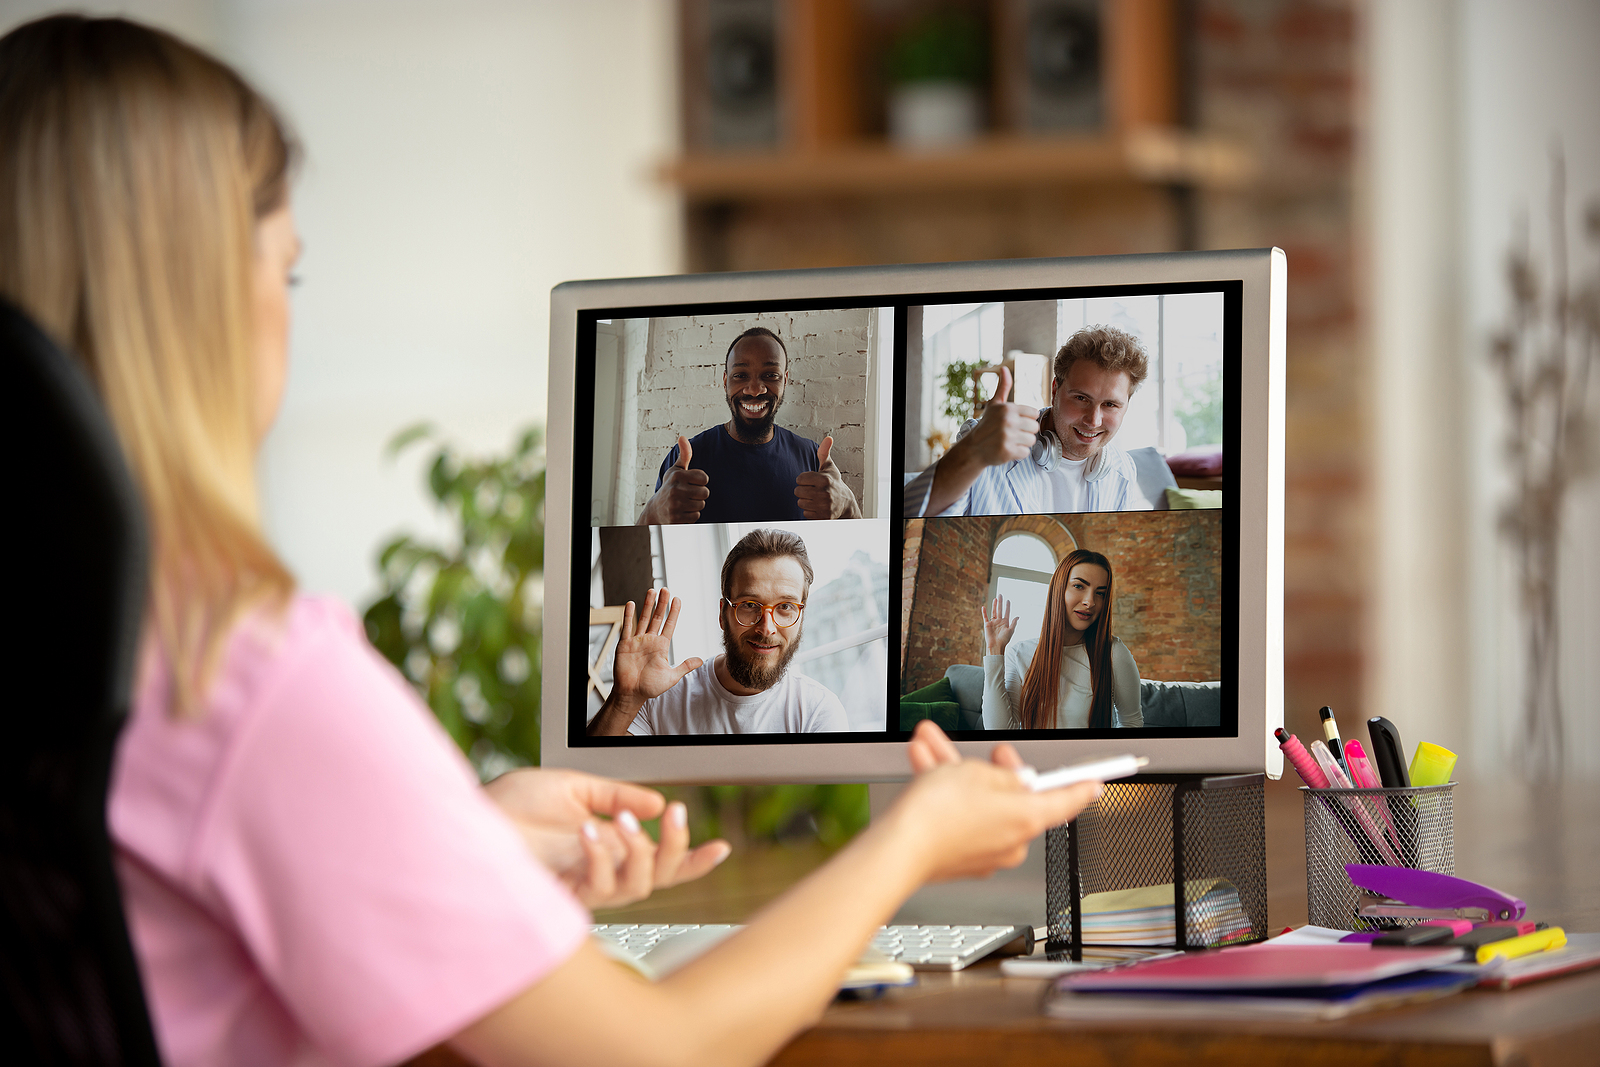 4 Ways to Ensure Projects Go Smoothly With Remote Teams